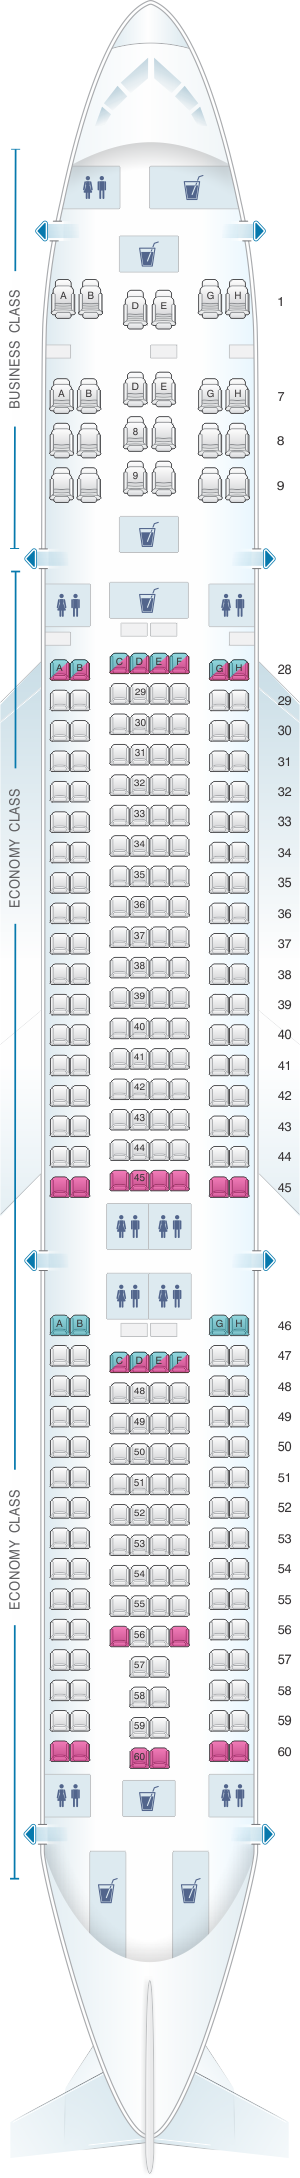 Seat map for Csa Czech Airlines Airbus A330 300